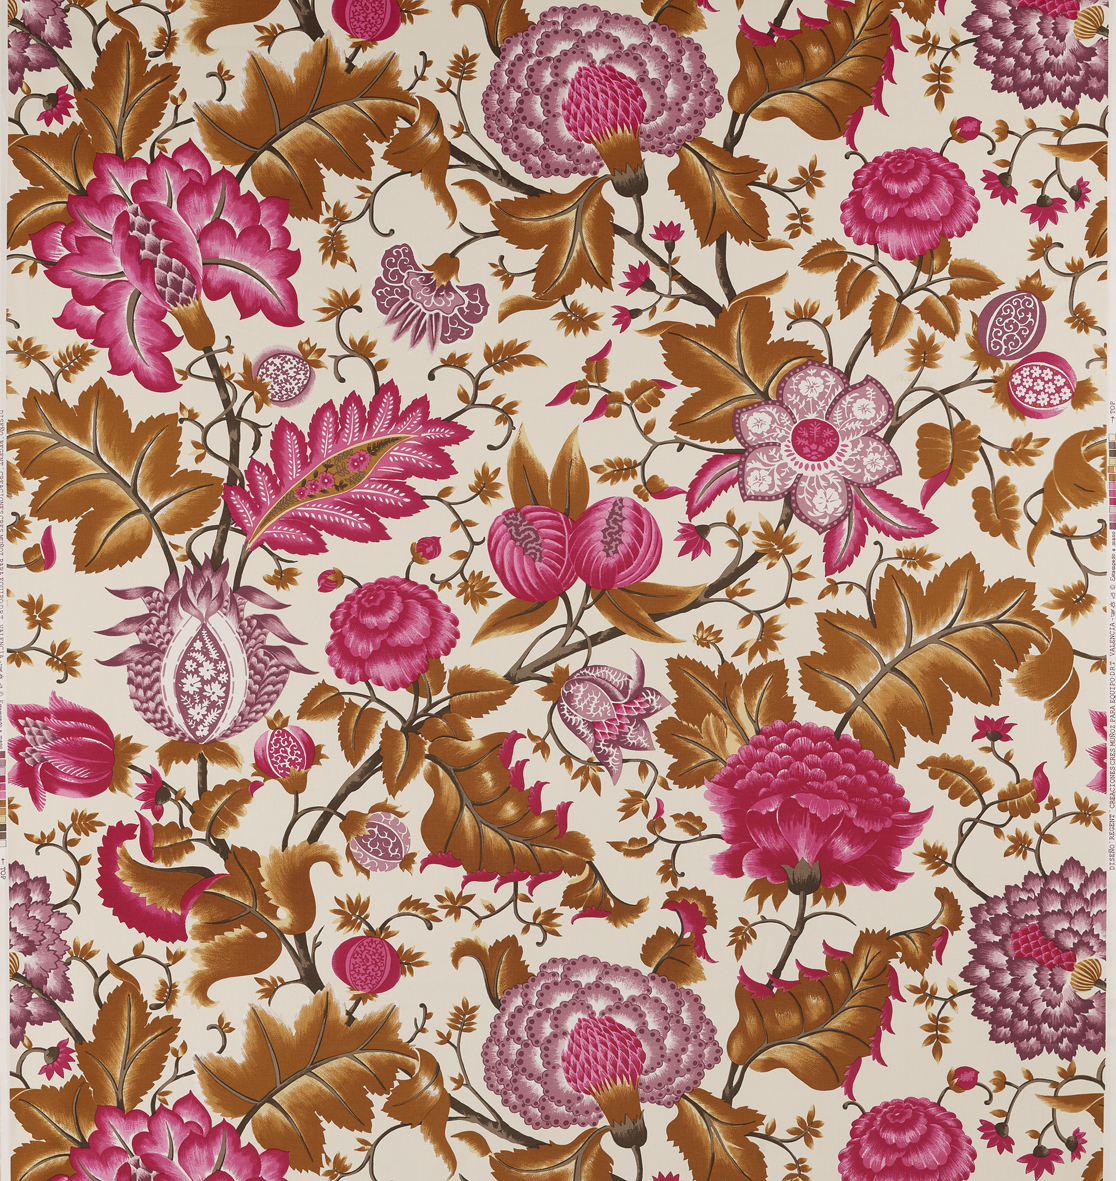 Printed cotton fabric with floral pattern regent by equipo for Printed cotton fabric